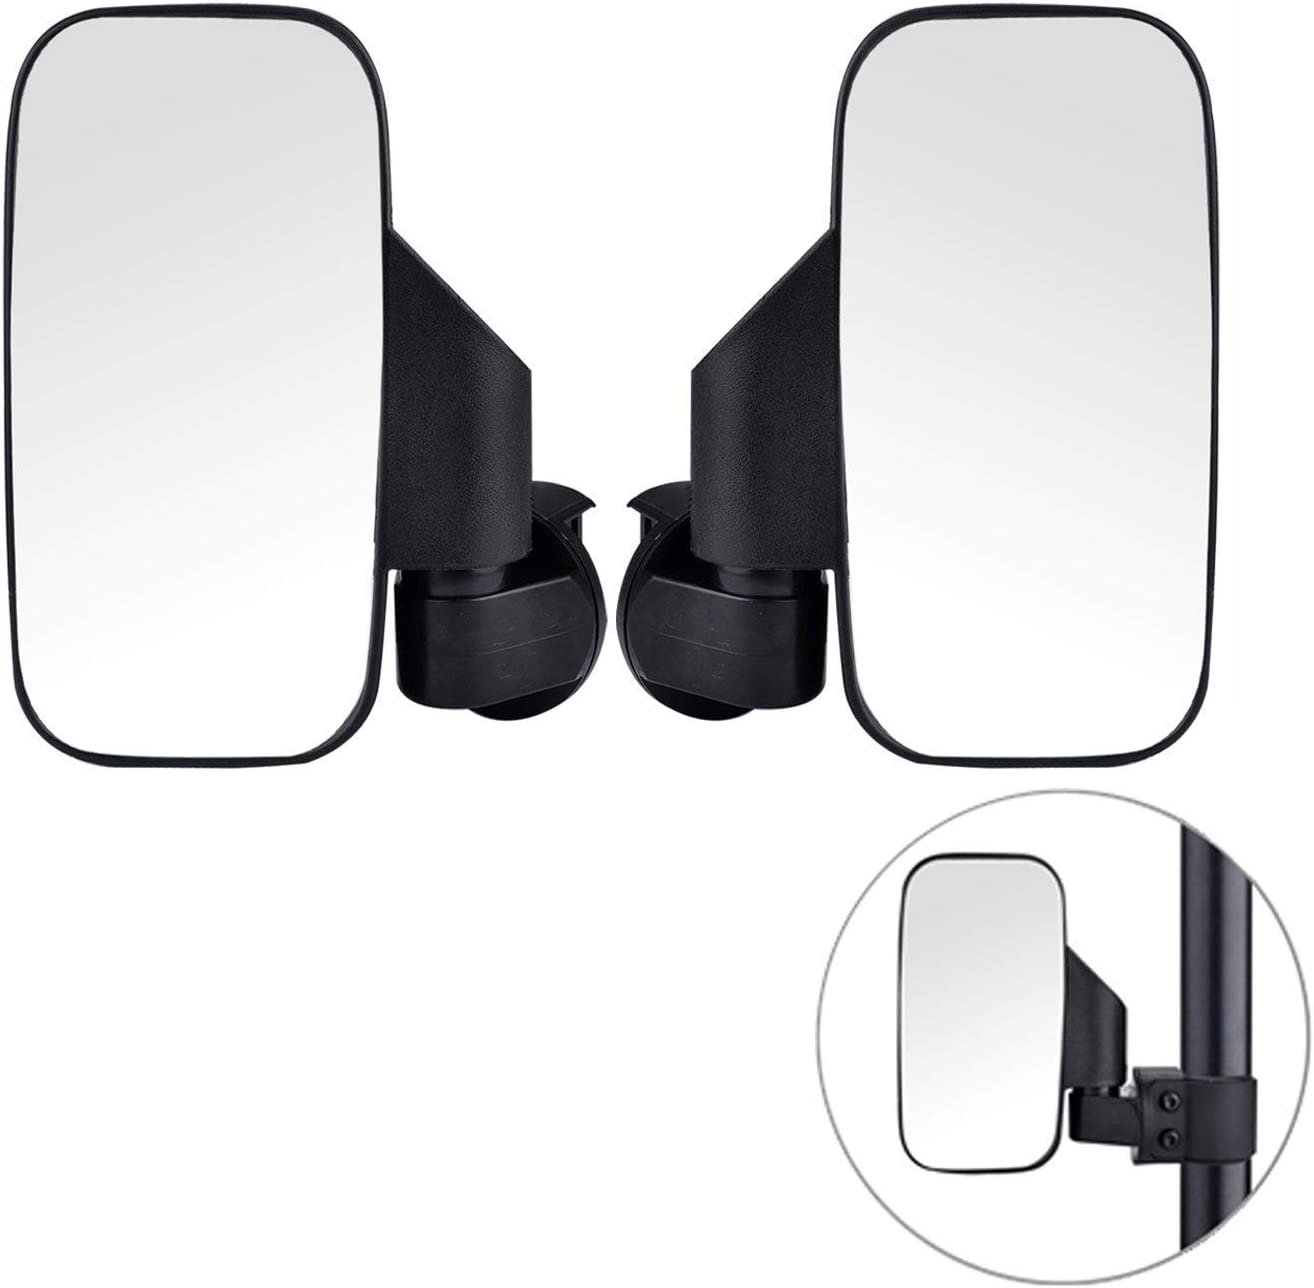 2020 Upgraded UTV Side View Mirrors, Adjustable Wide Rear Clear View with Shatter-Proof Tempered Glass, Moveland UTV Off Road Accessories for Polaris RZR, Can-Am, Kawasaki, kubota, Yamaha, Maverick-2